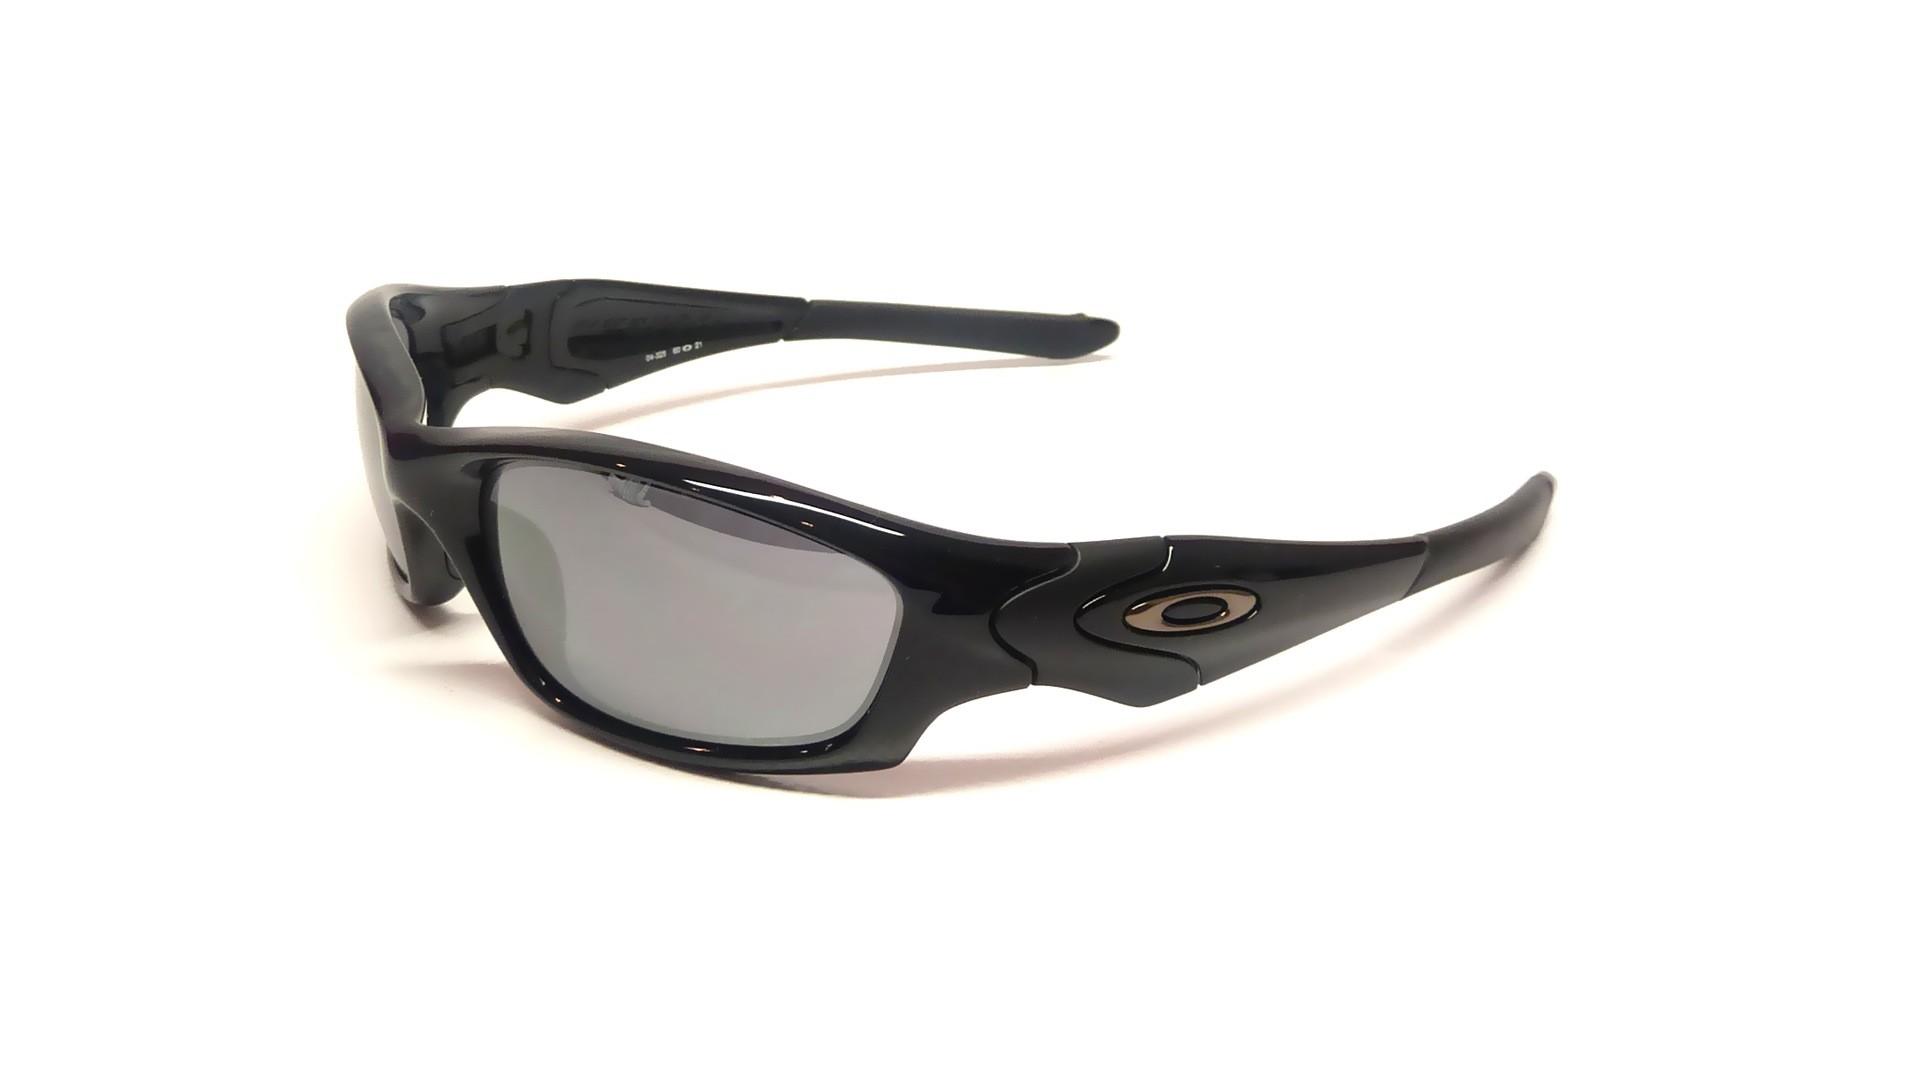 4feedecee4 Oakley Sunglasses Straight Jacket Lenses « Heritage Malta